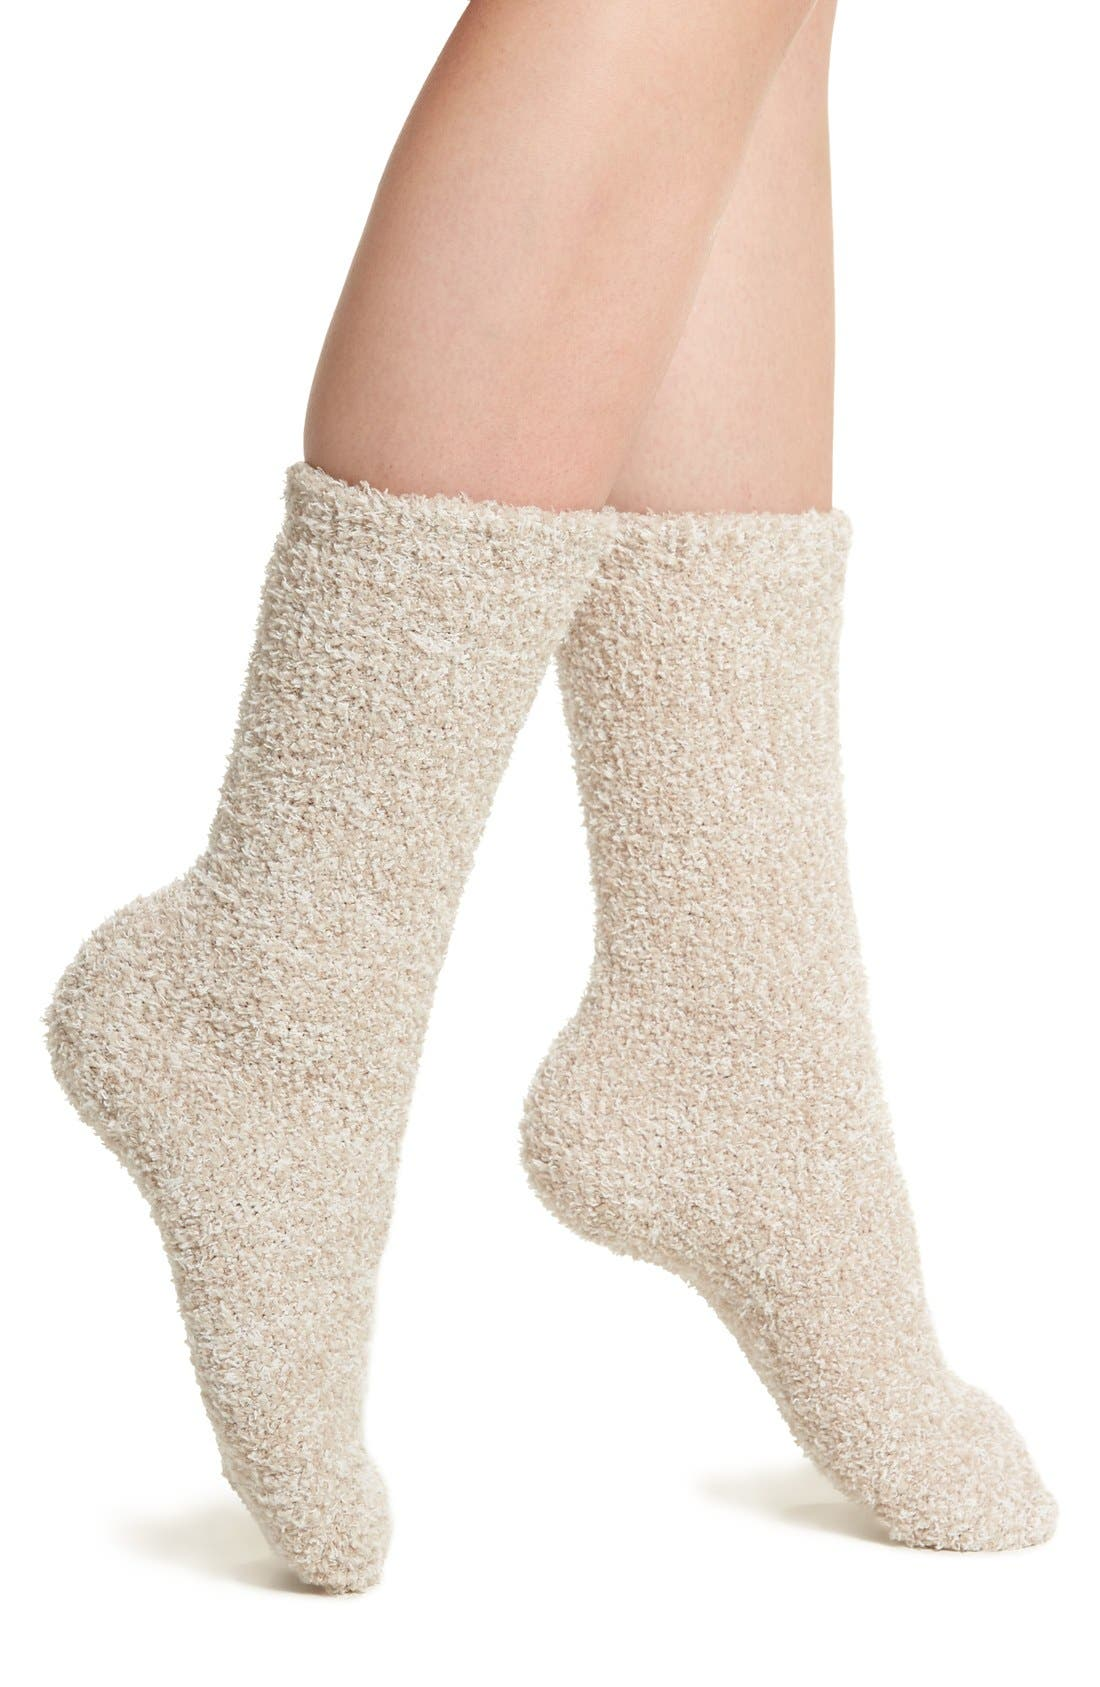 CozyChic<sup>®</sup> Socks,                             Main thumbnail 1, color,                             Stone/ White